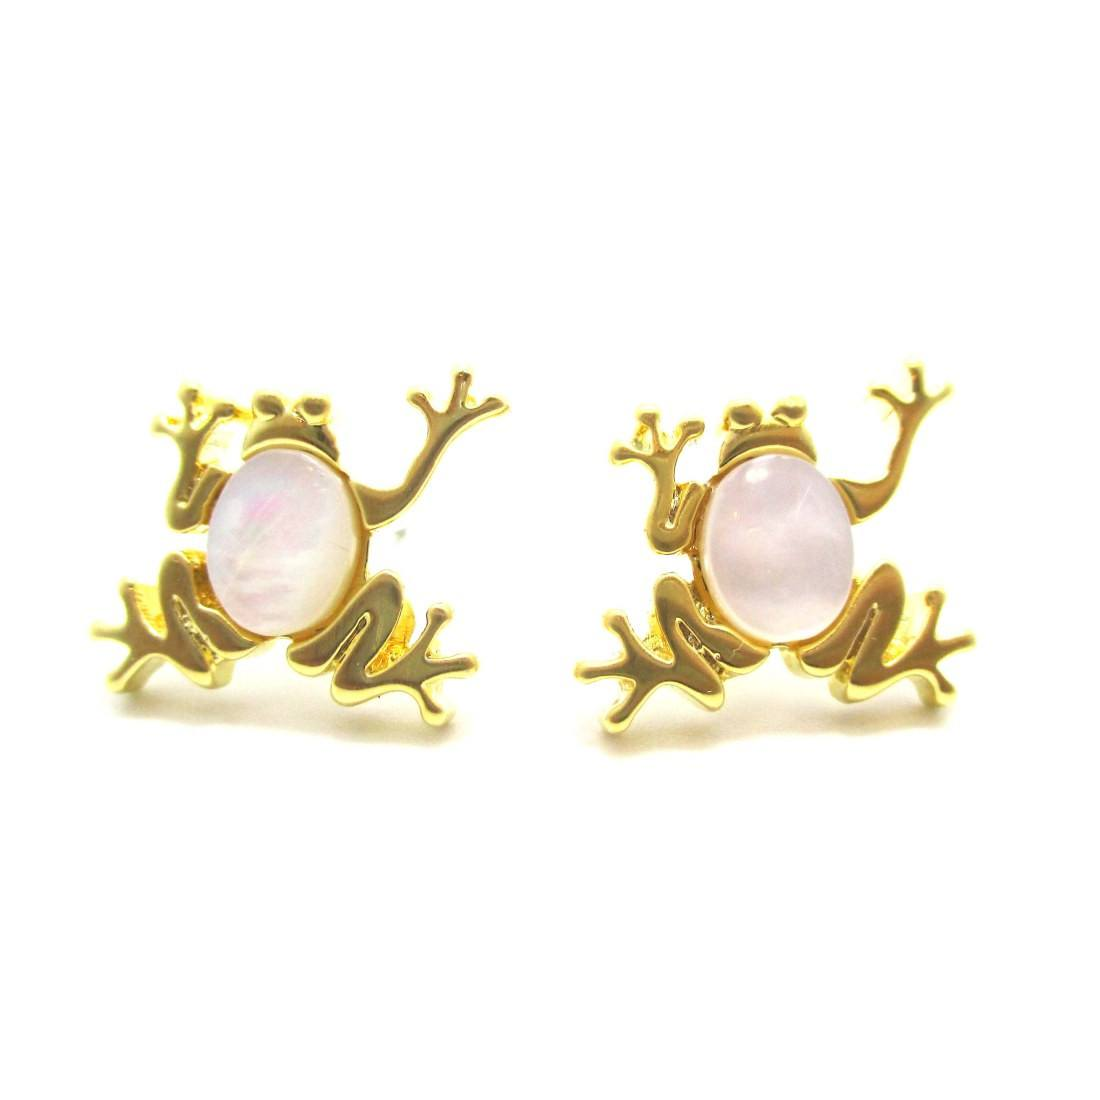 Frog Toad Shaped Animal Themed Stud Earrings in Gold